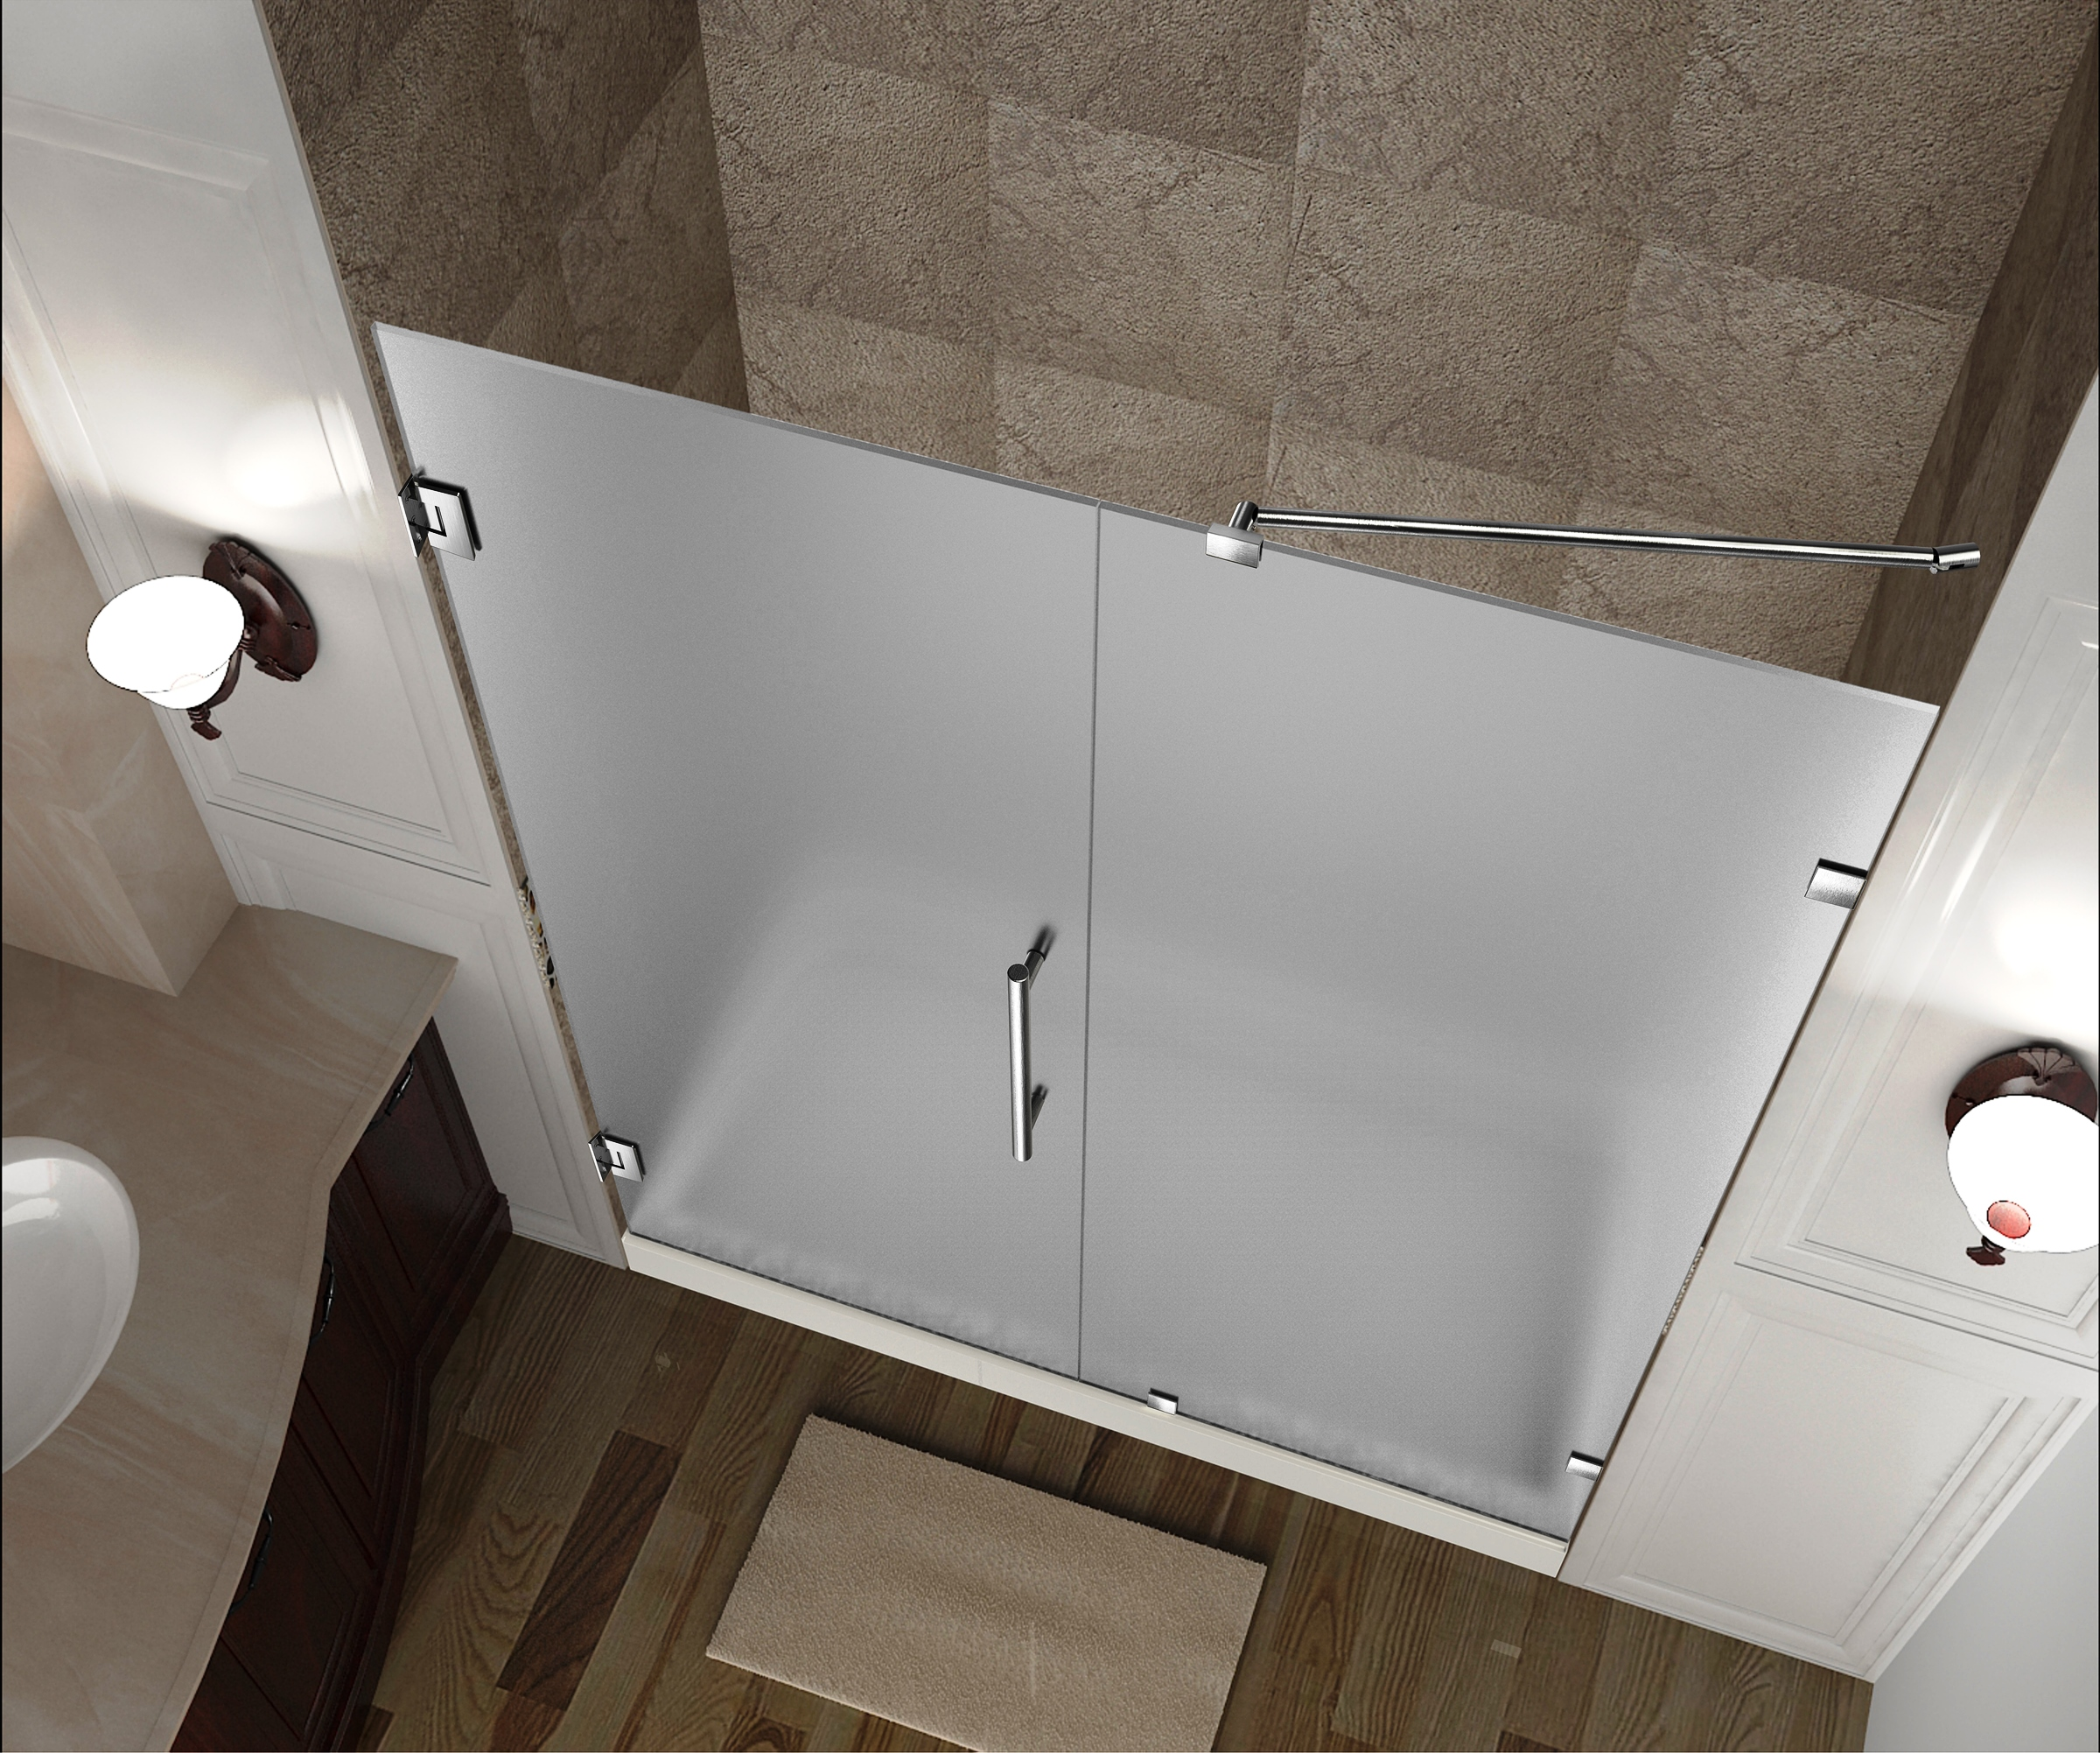 Details About Aston Sdr985f 31 10 31 X 72 Frameless Hinged Frosted Glass Shower Door